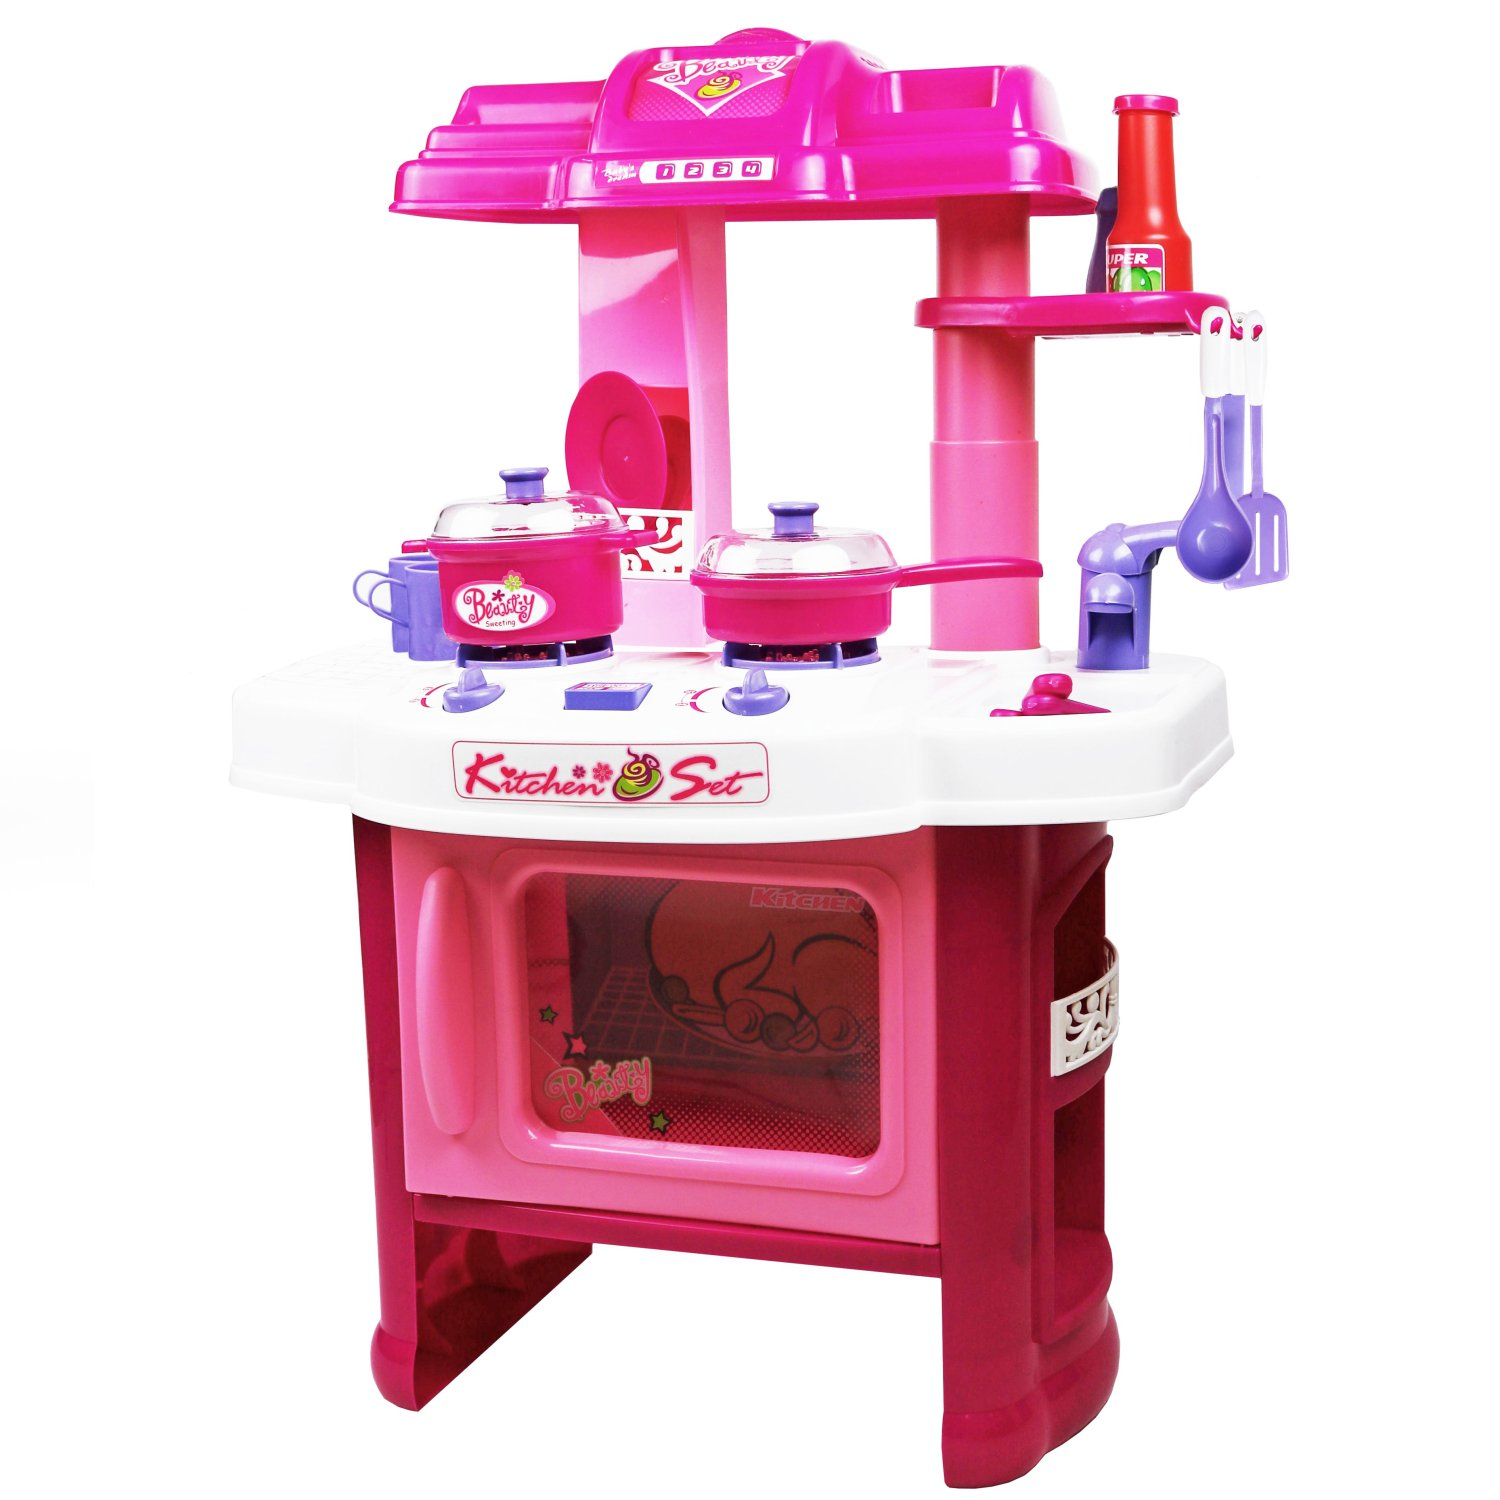 Childrens Kids Pink Play Electronic Kitchen Cooking Playset